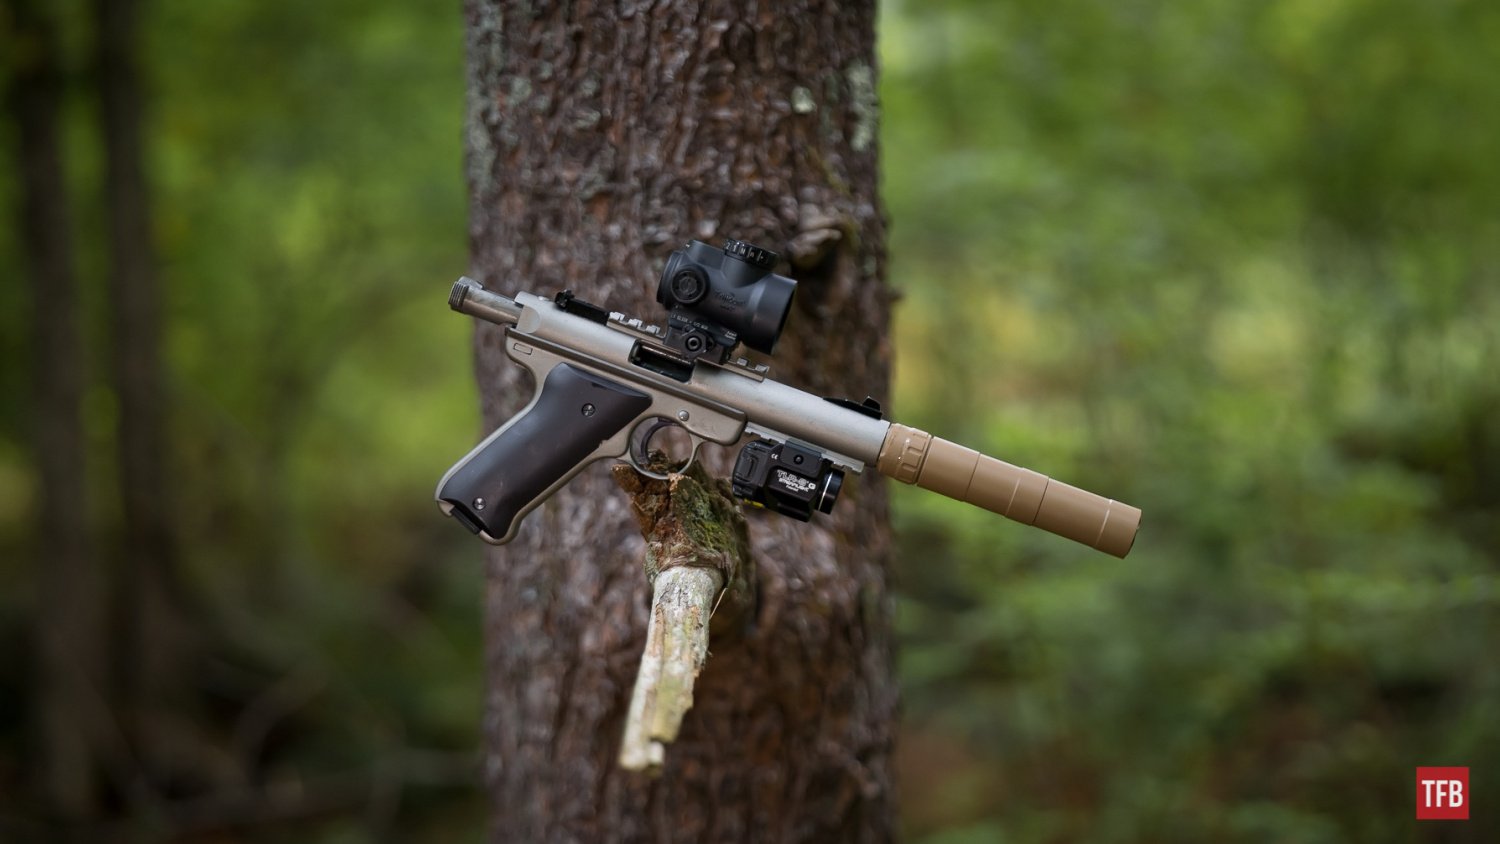 SILENCER SATURDAY #197: Quiet Carry - Rugged Mustang22 Suppressors Mustang 22